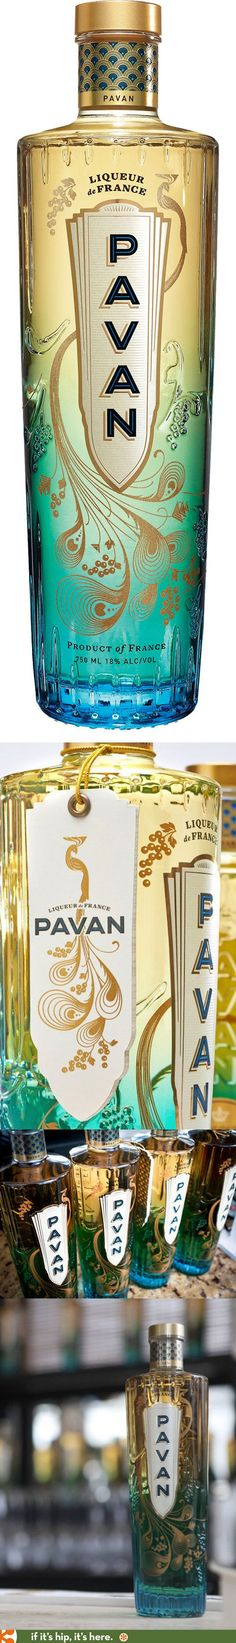 Pavan Liqueur's peacock-inspired bottle is one of the prettiest I've ever seen. PD